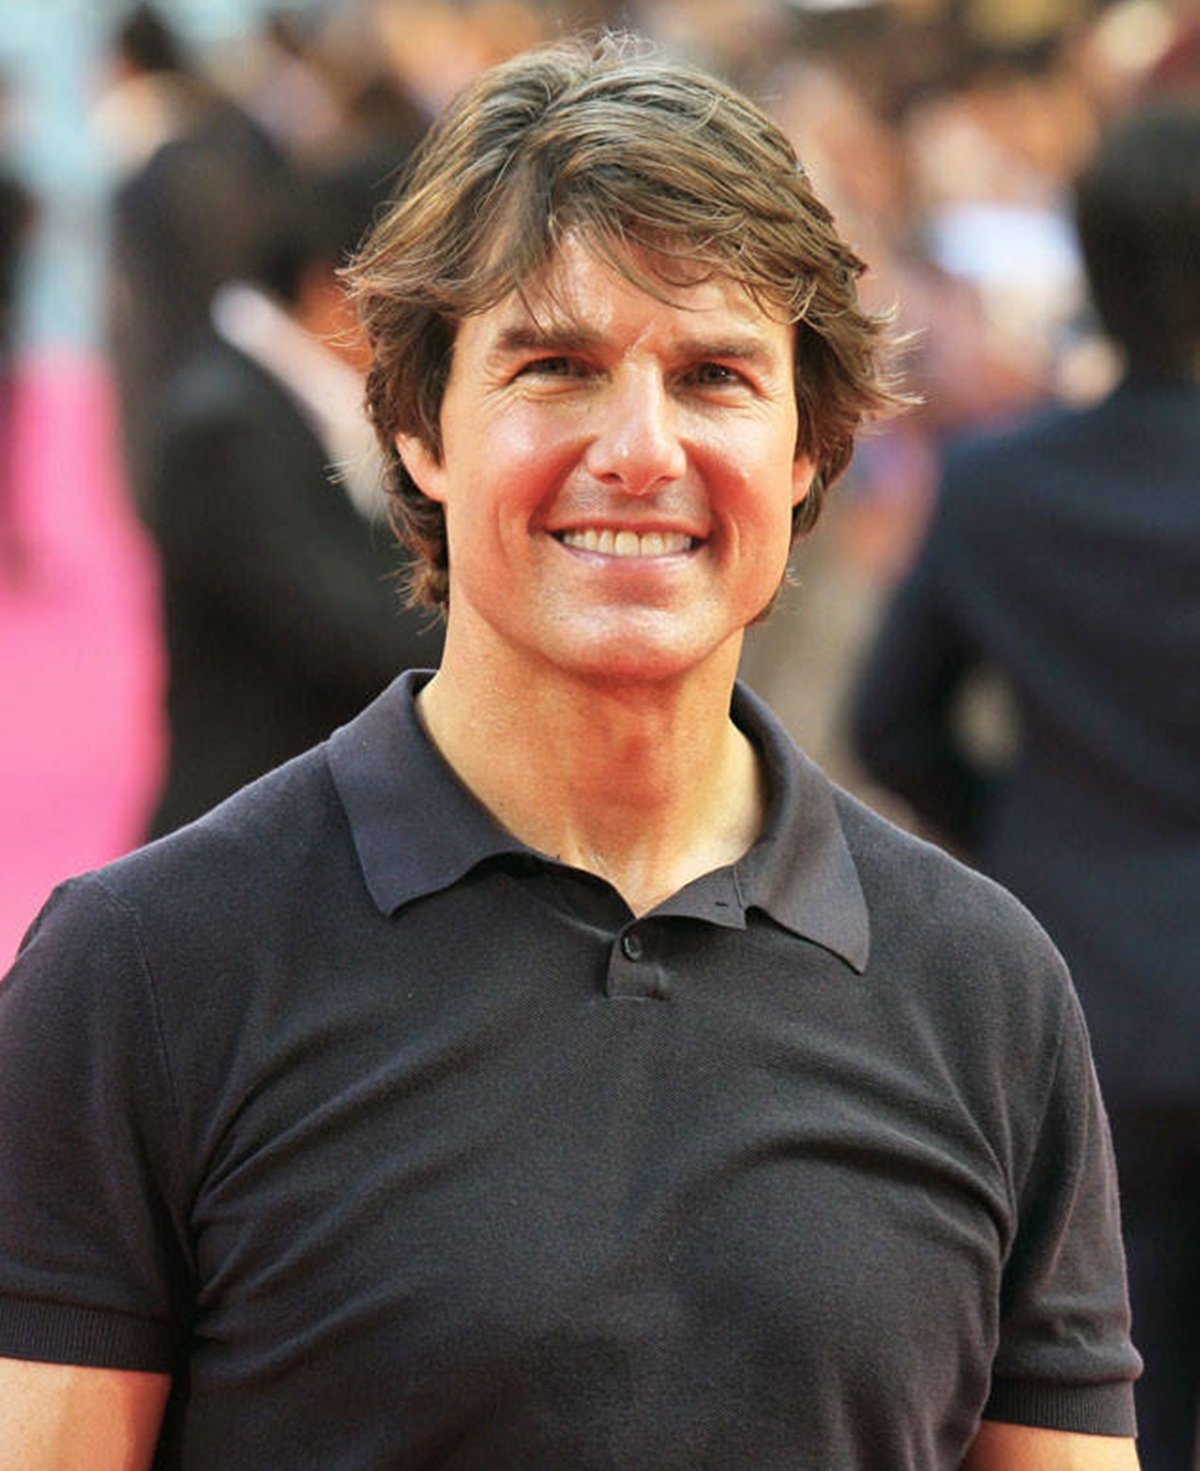 8 4 14 Interesting Facts About Tom Cruise